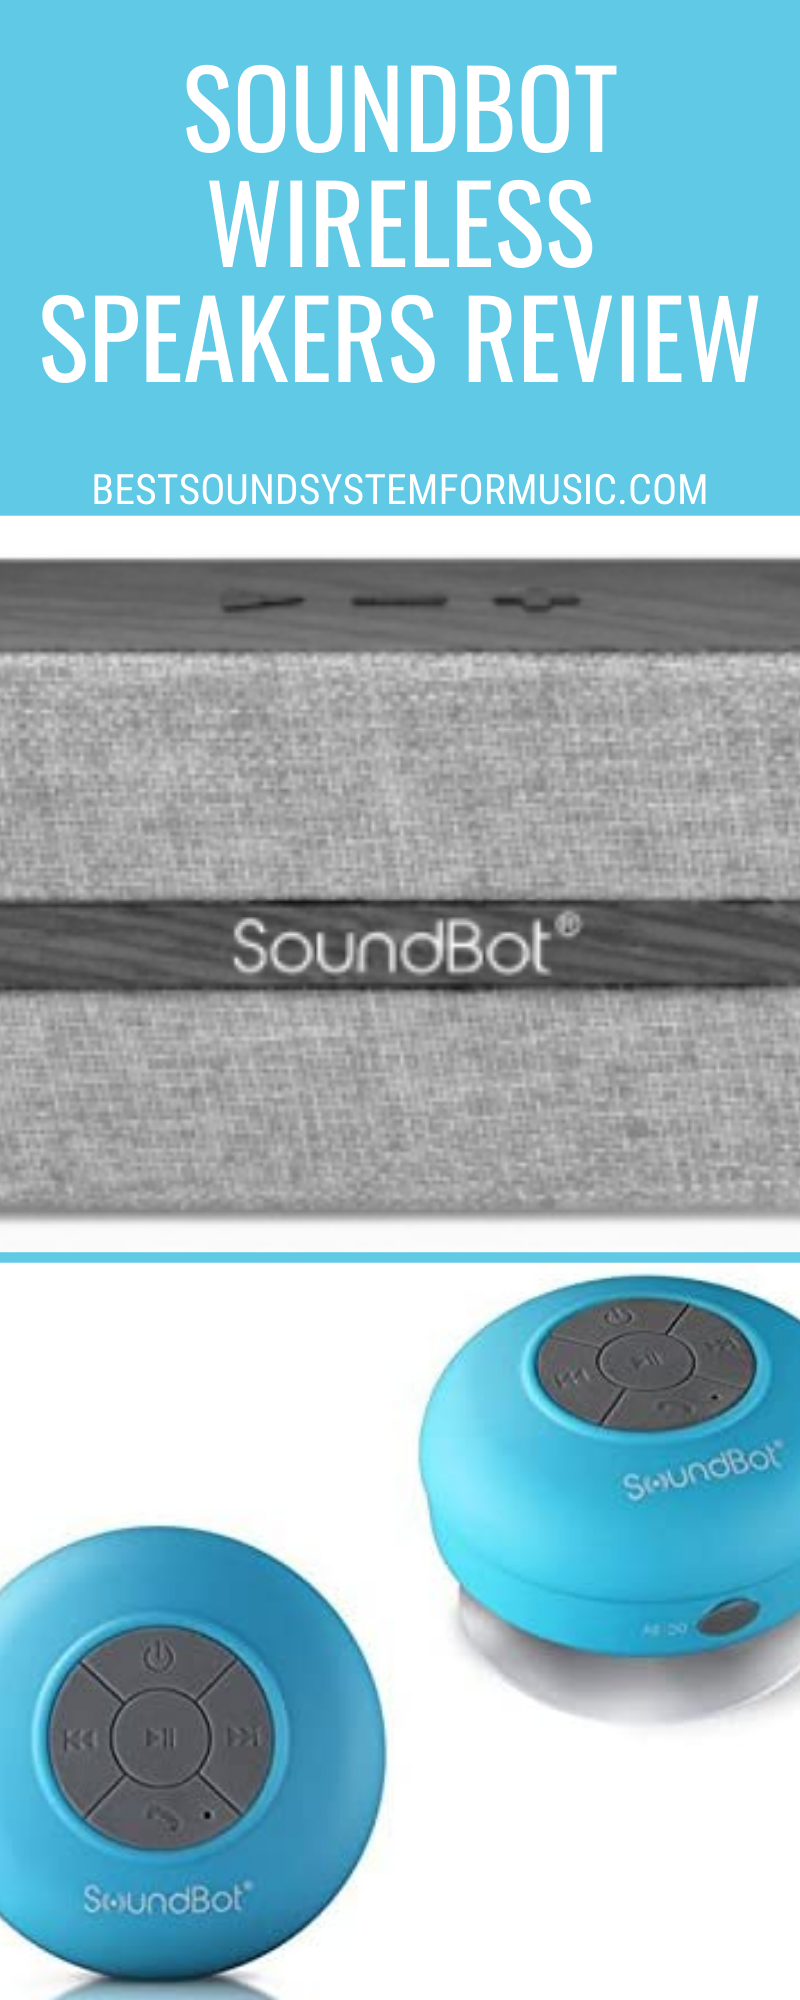 Soundbot Wireless Speakers Reviews